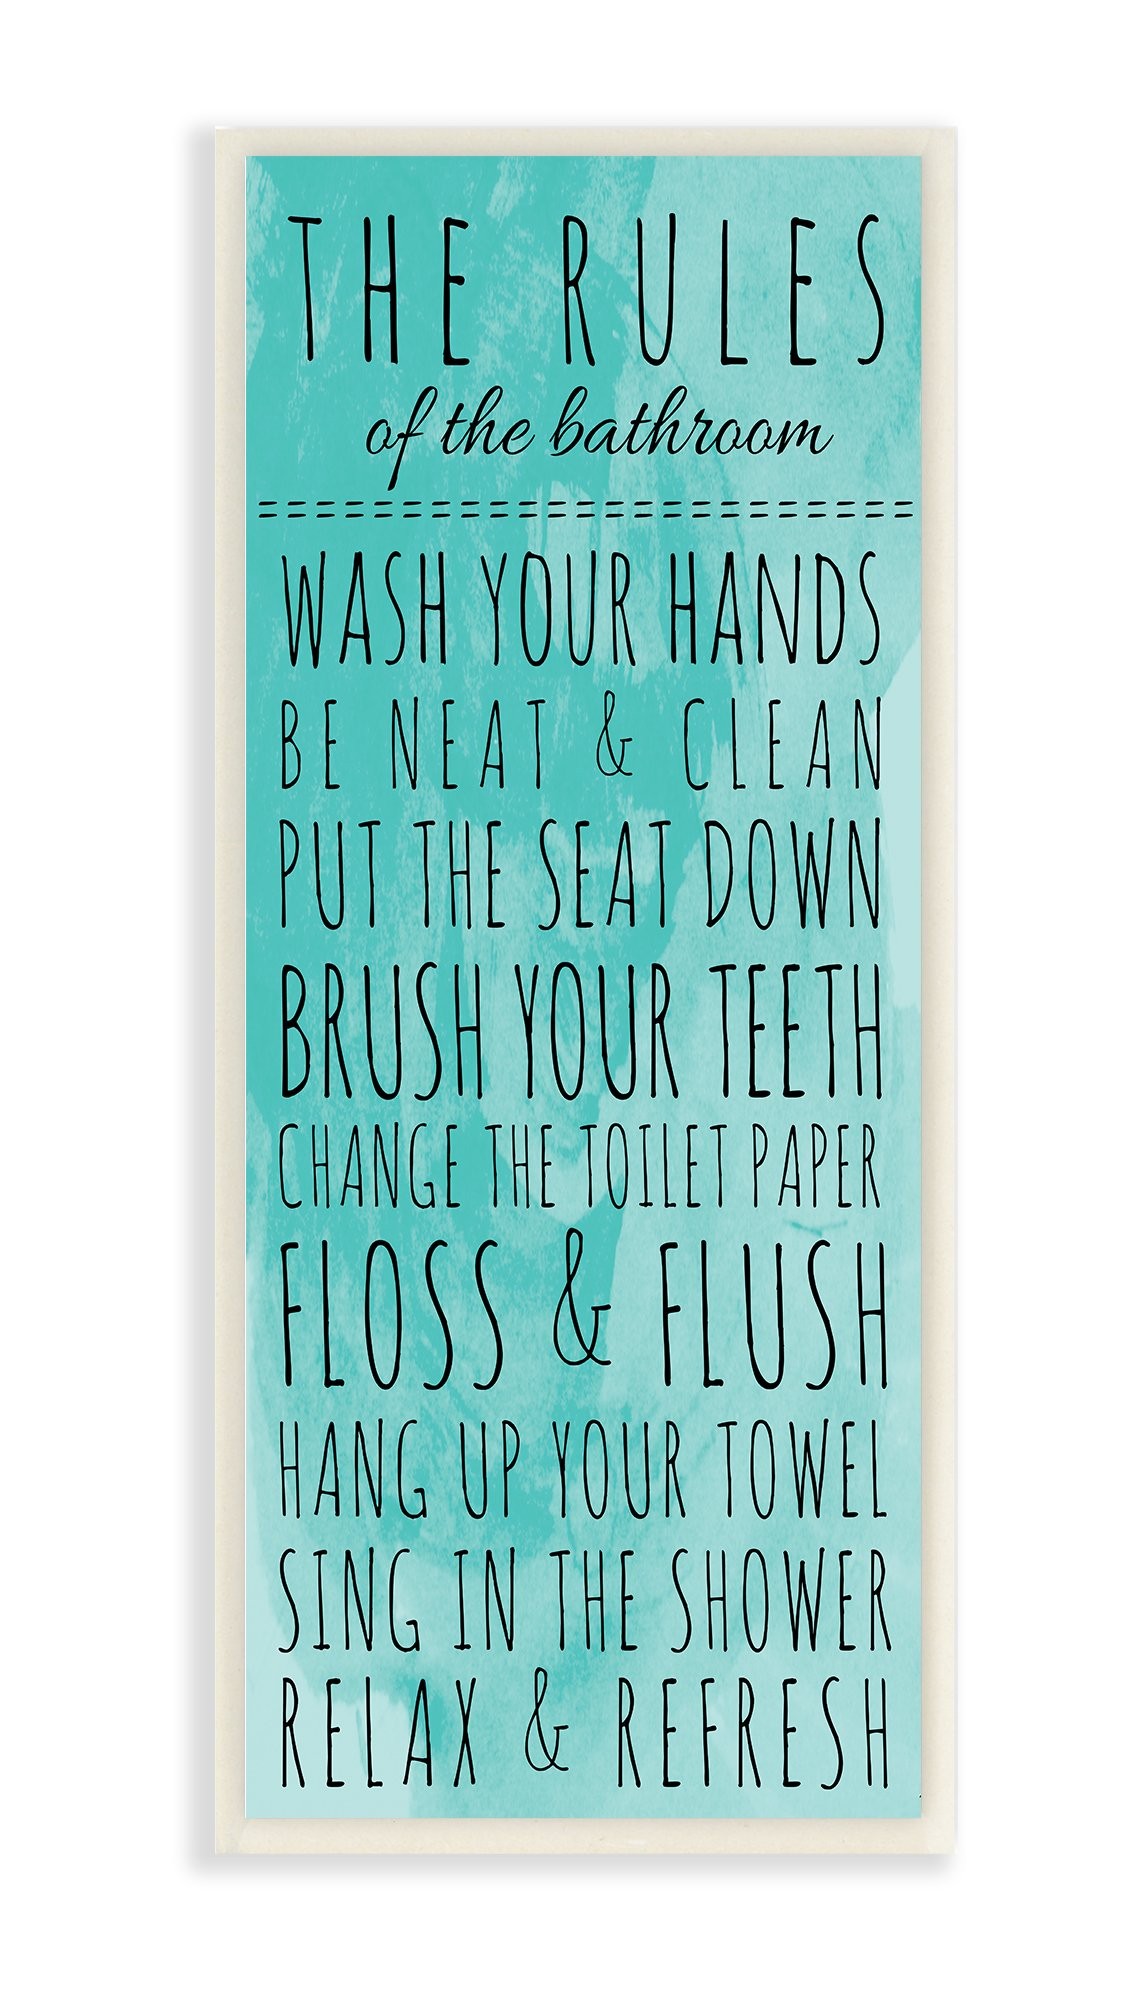 Stupell Home Décor Bathroom ''The Rules'' Turquoise Wall Plaque Art, 7 x 0.5 x 17, Proudly Made in USA